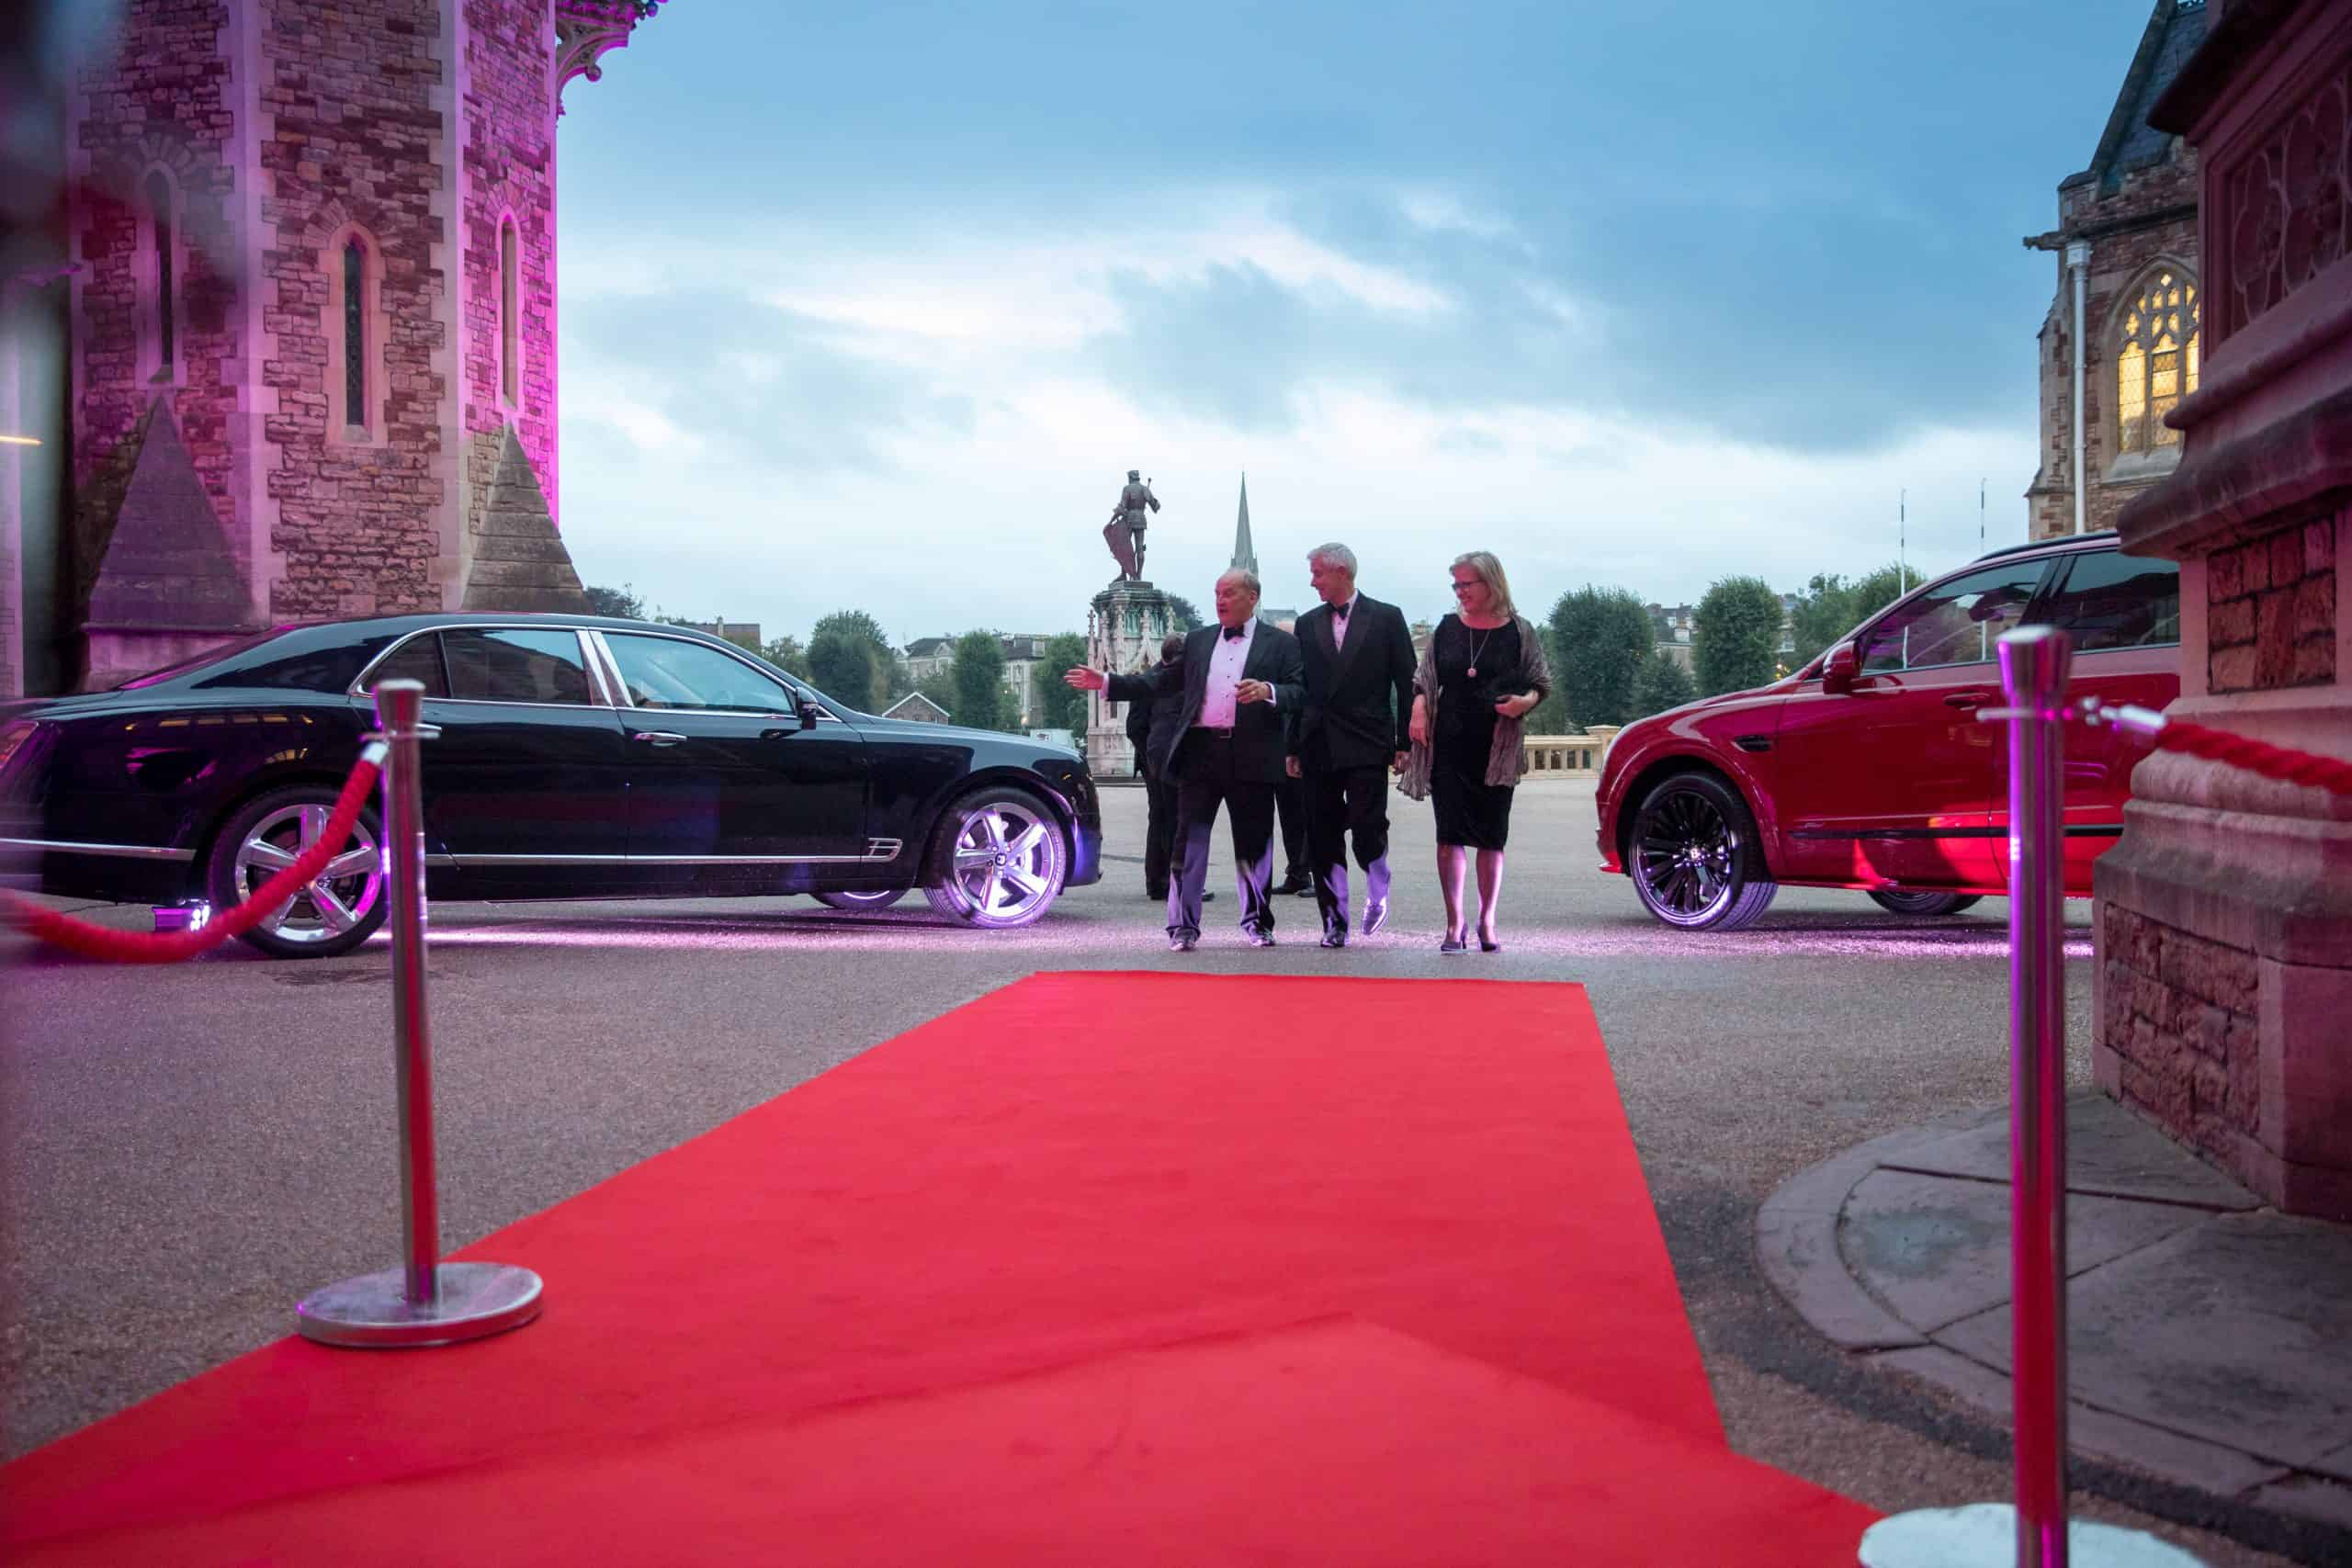 Charity Fundraising Dinner red carpet arrival